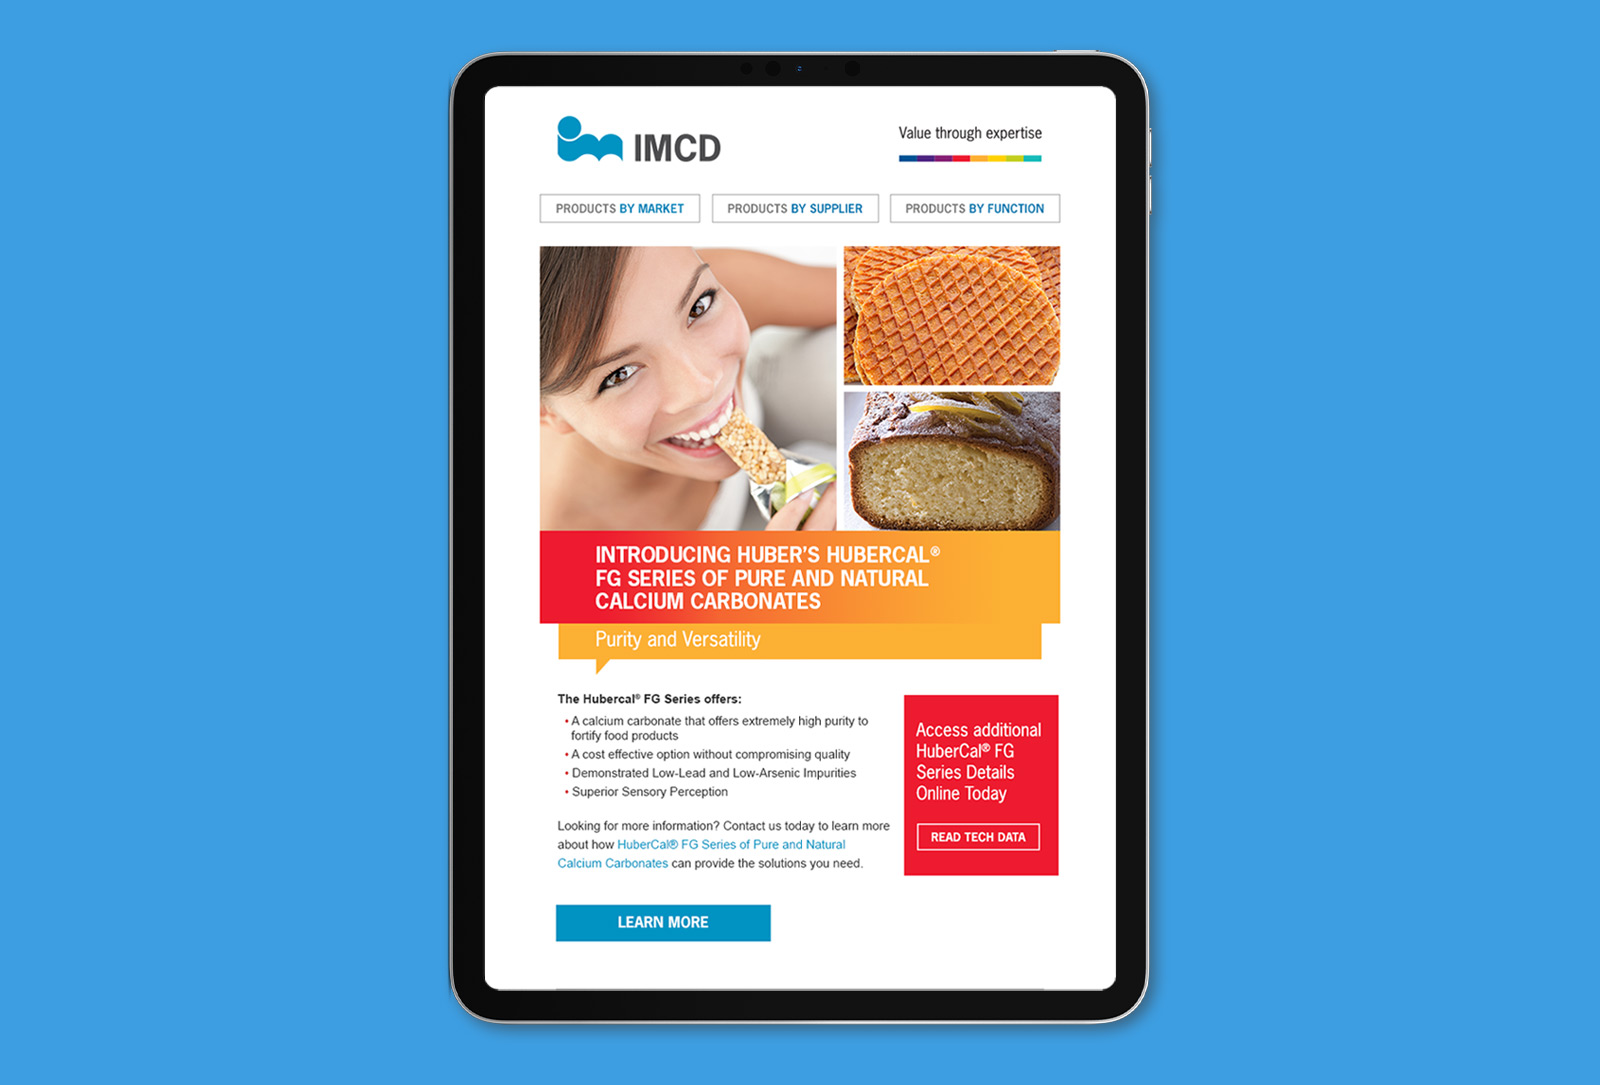 IMCD campaign landing page graphic design on tablet